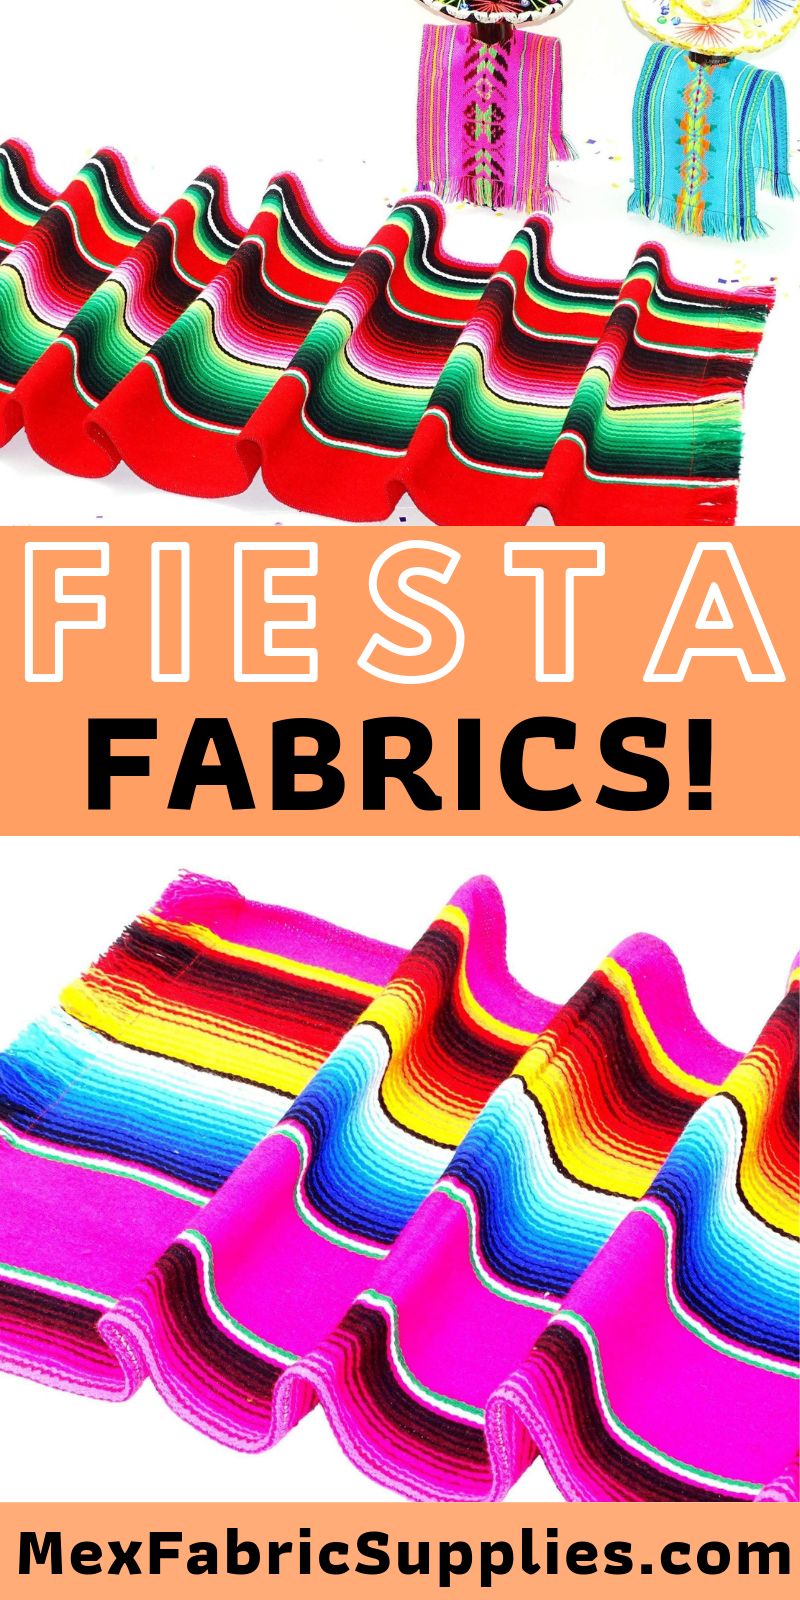 From Aztec Fabric To Striped Fabric We Have The Perfect Decorations For Your Next Fiesta Mexican Fiesta Fiestaid Mexican Fabric Aztec Fabric Serape Decor